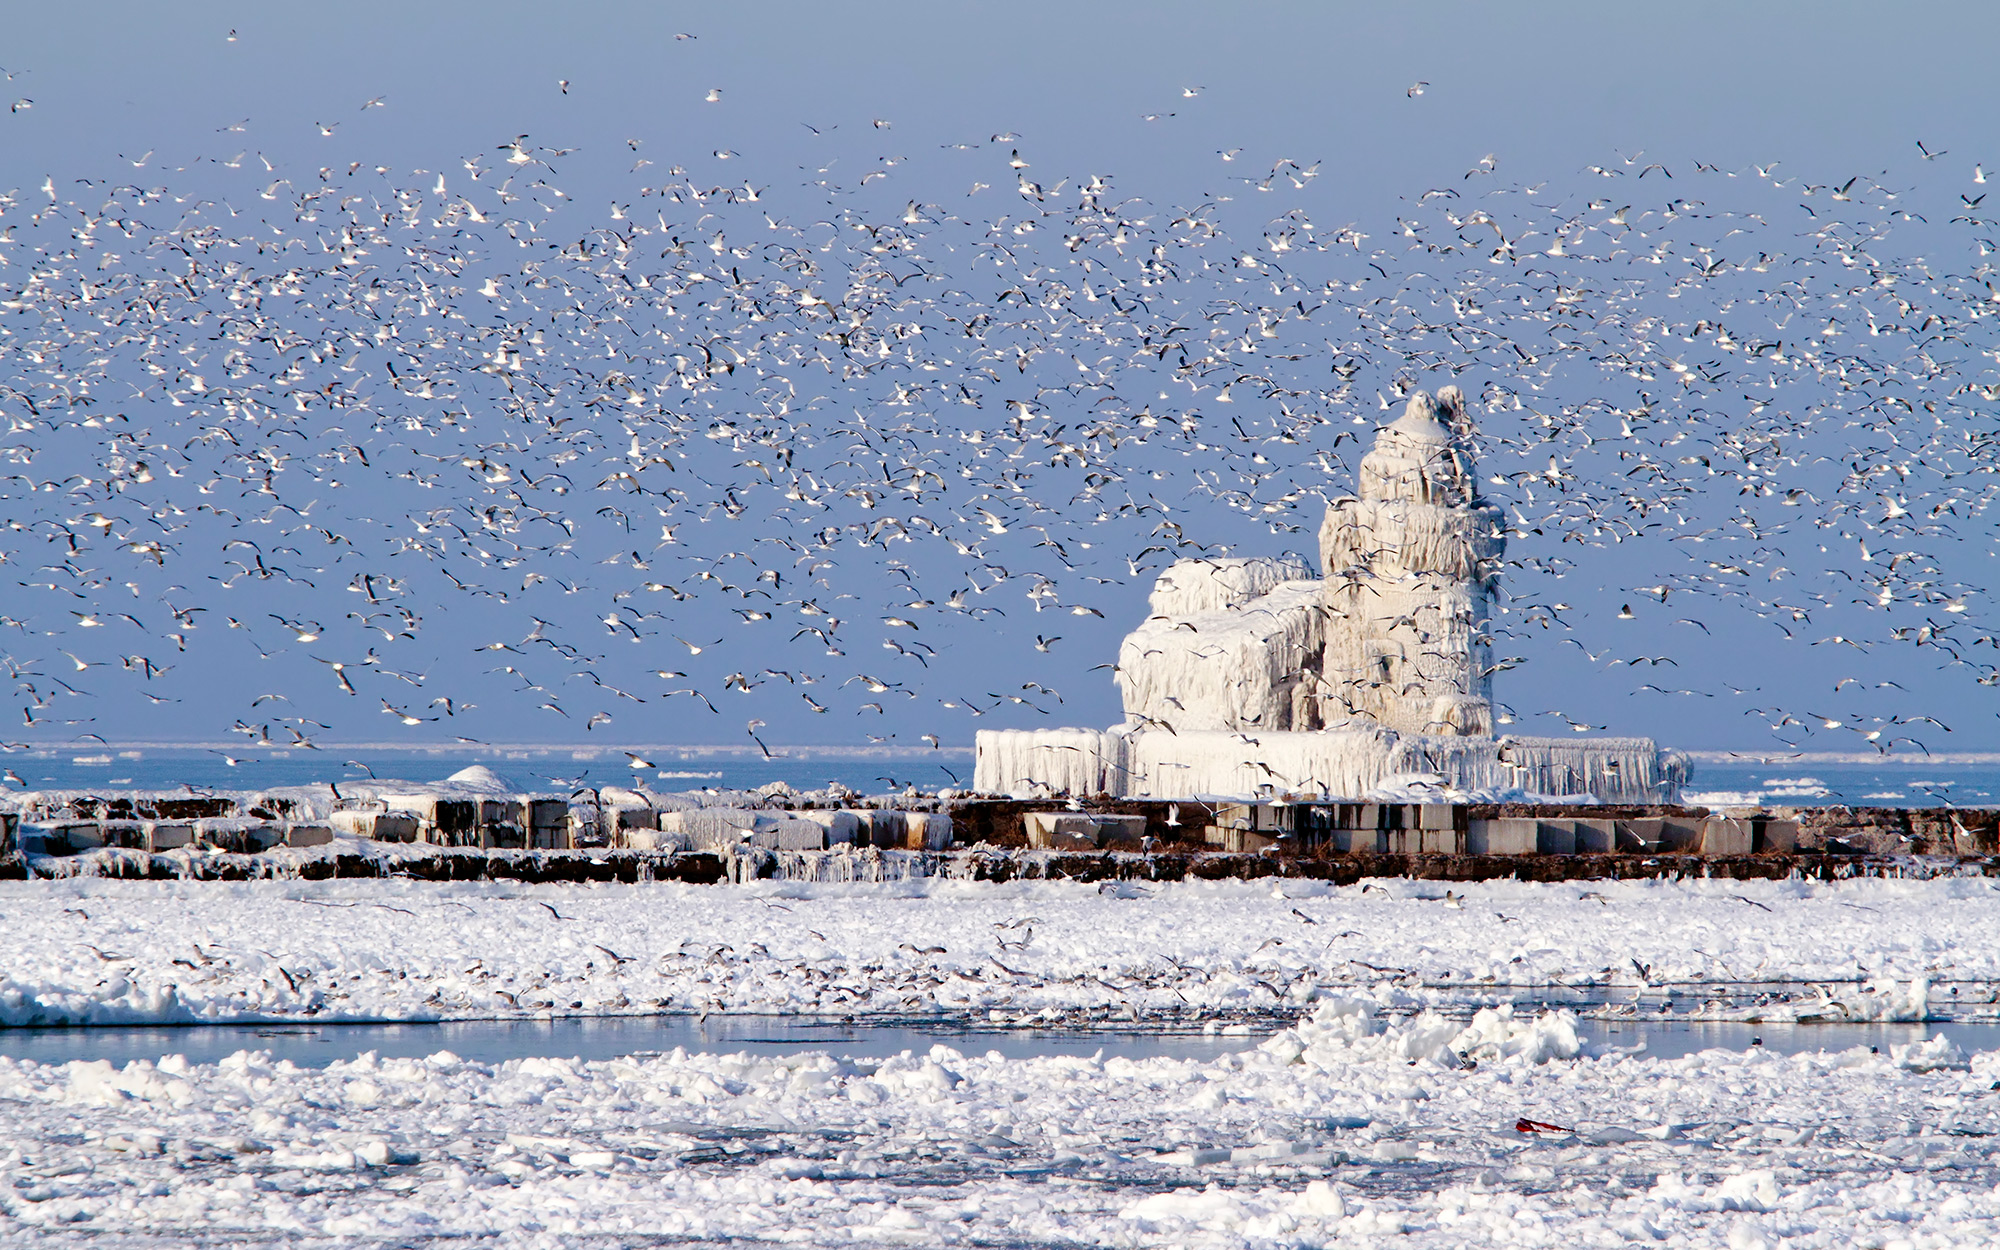 Weirdest Roadside Attractions: Ohio: Frozen Cleveland Lighthouse